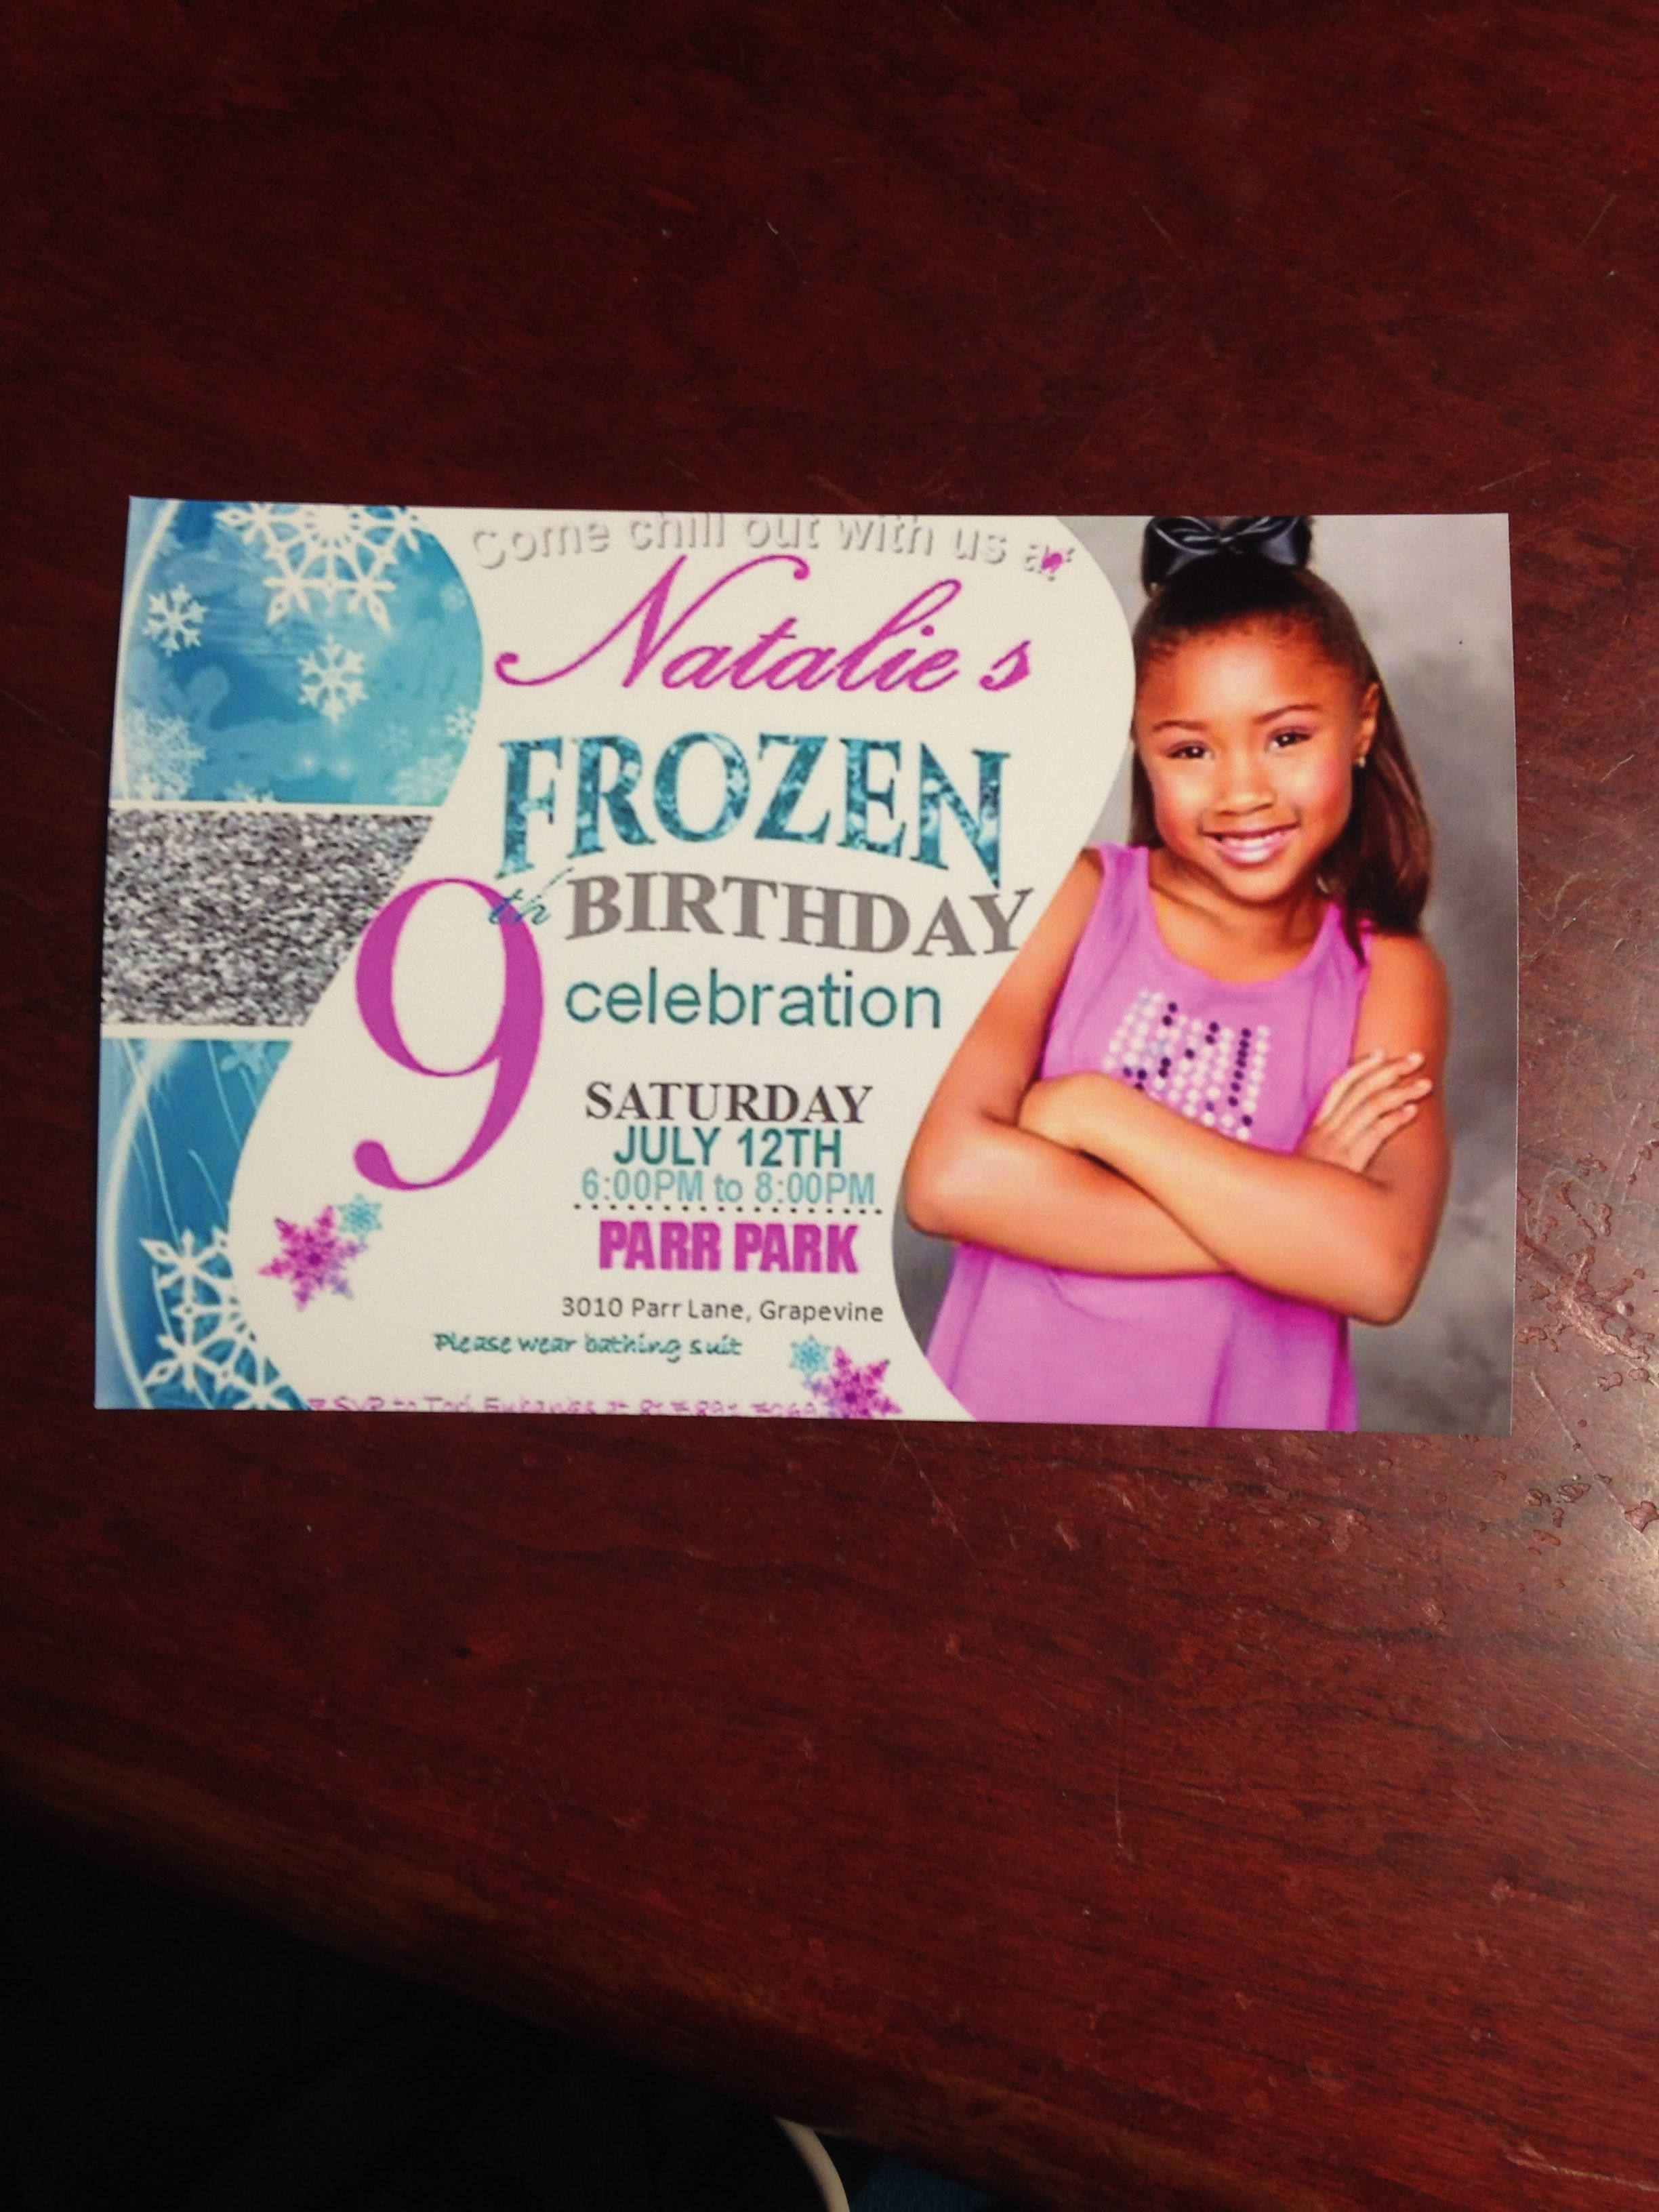 Nats Frozen Party Invitations Handmade In Microsoft Publisher Printed At Walgreens 75 For 10 Cant Beat That